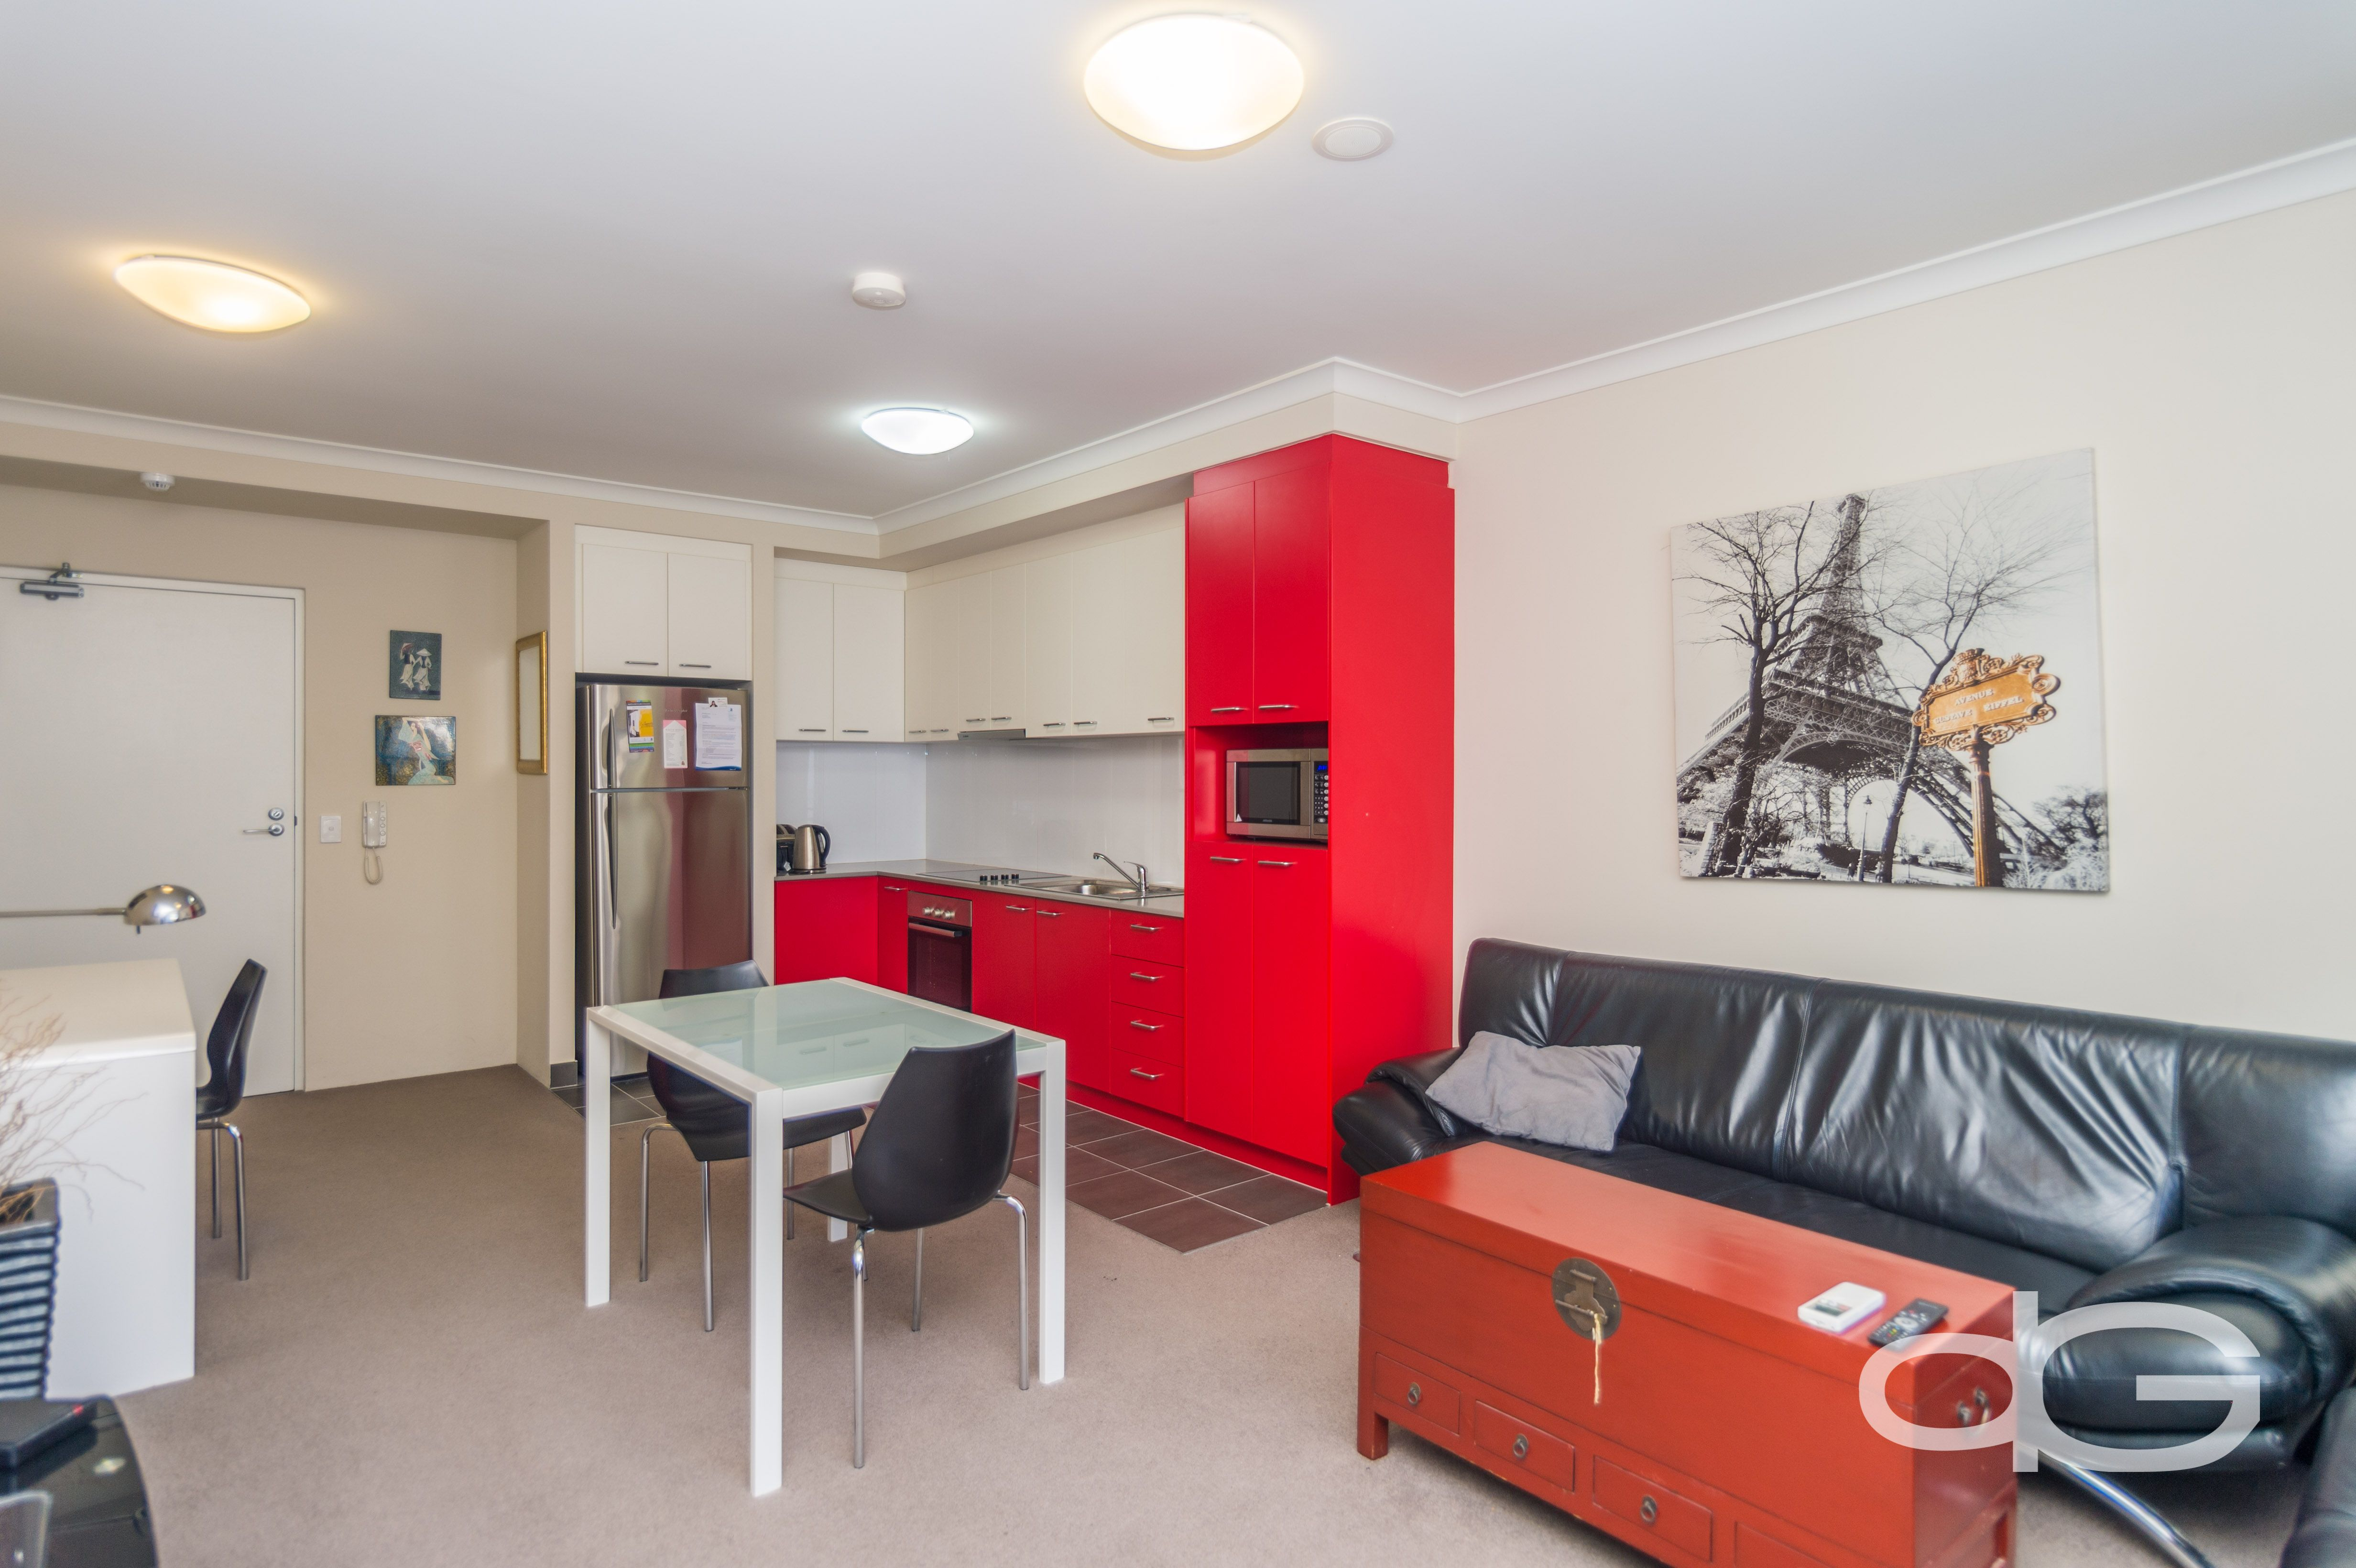 49/57 Beach Street, Fremantle